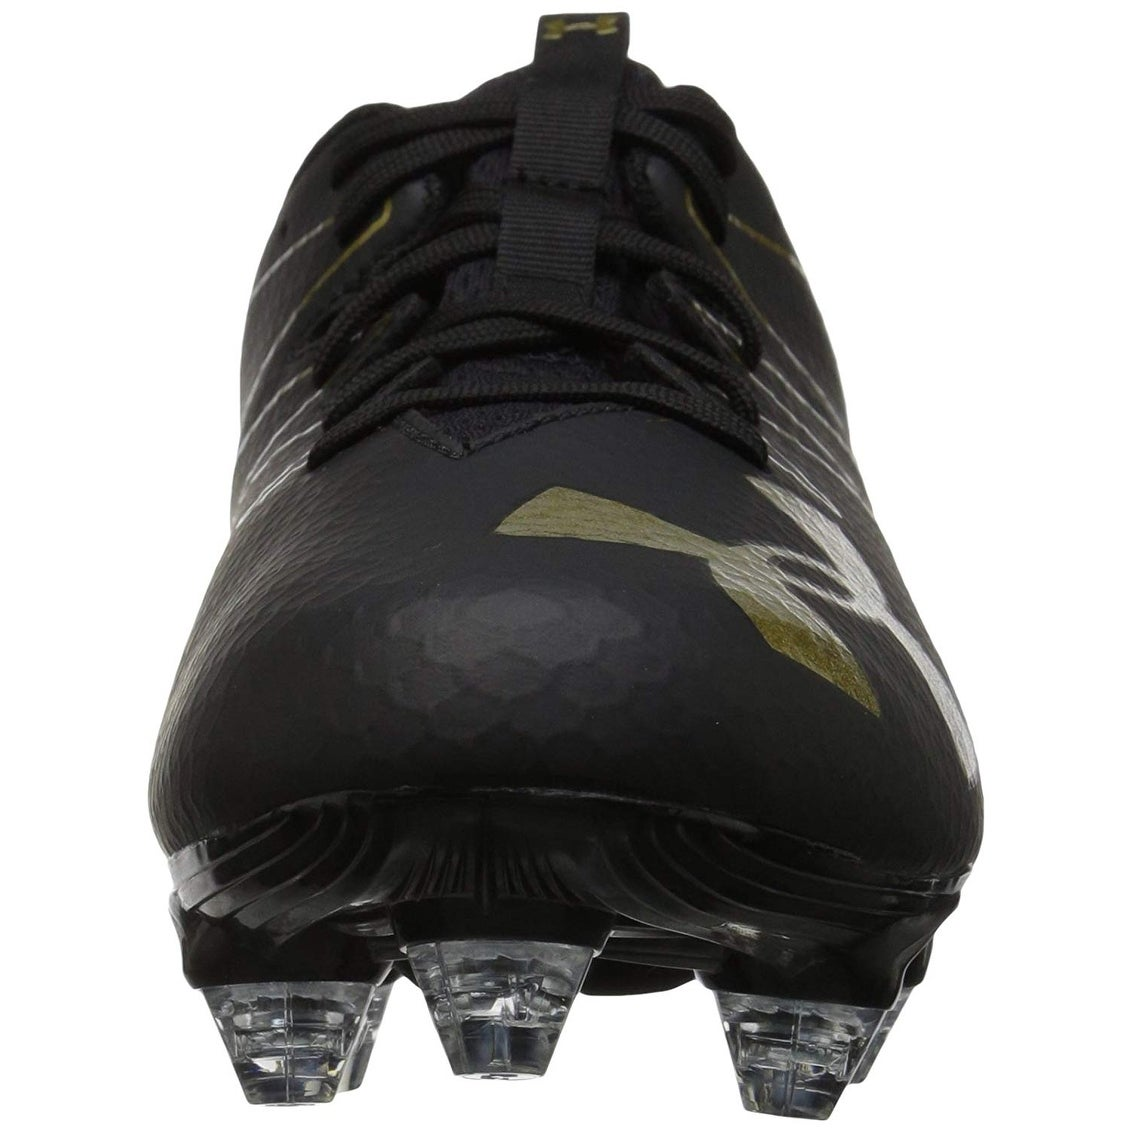 22c543df9865 Shop Under Armour Mens Nitro low d Low Top Lace Up Soccer Sneaker - 7 - Free  Shipping Today - Overstock - 22818541